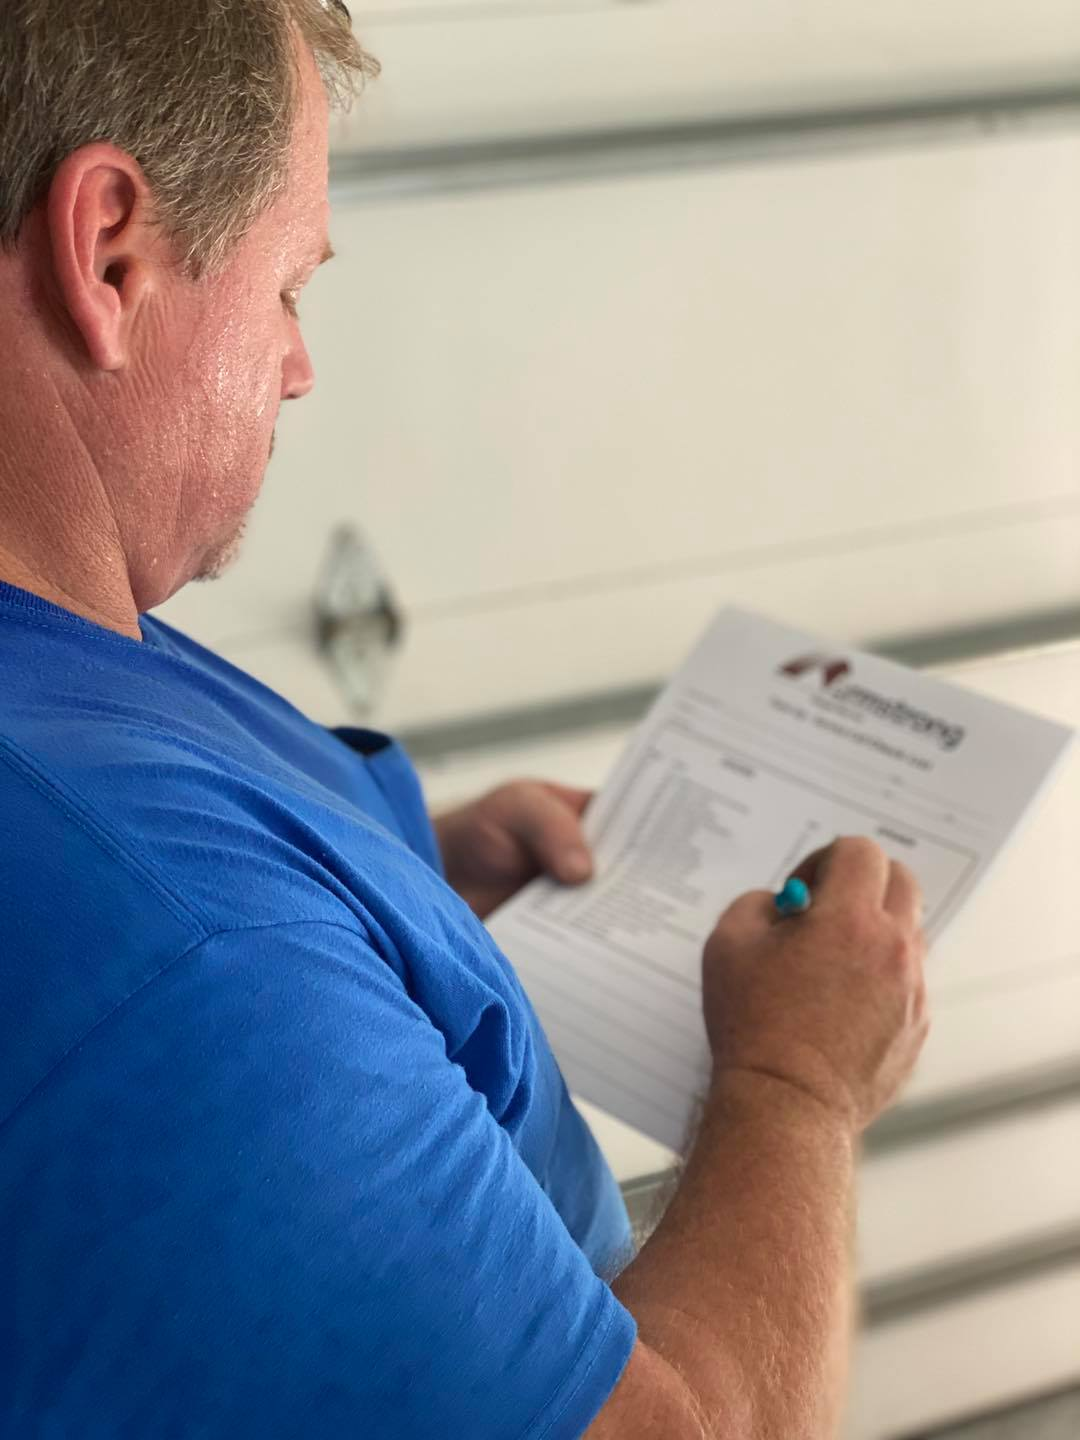 jeff boone using the 28 point checklist from armstrong garage door